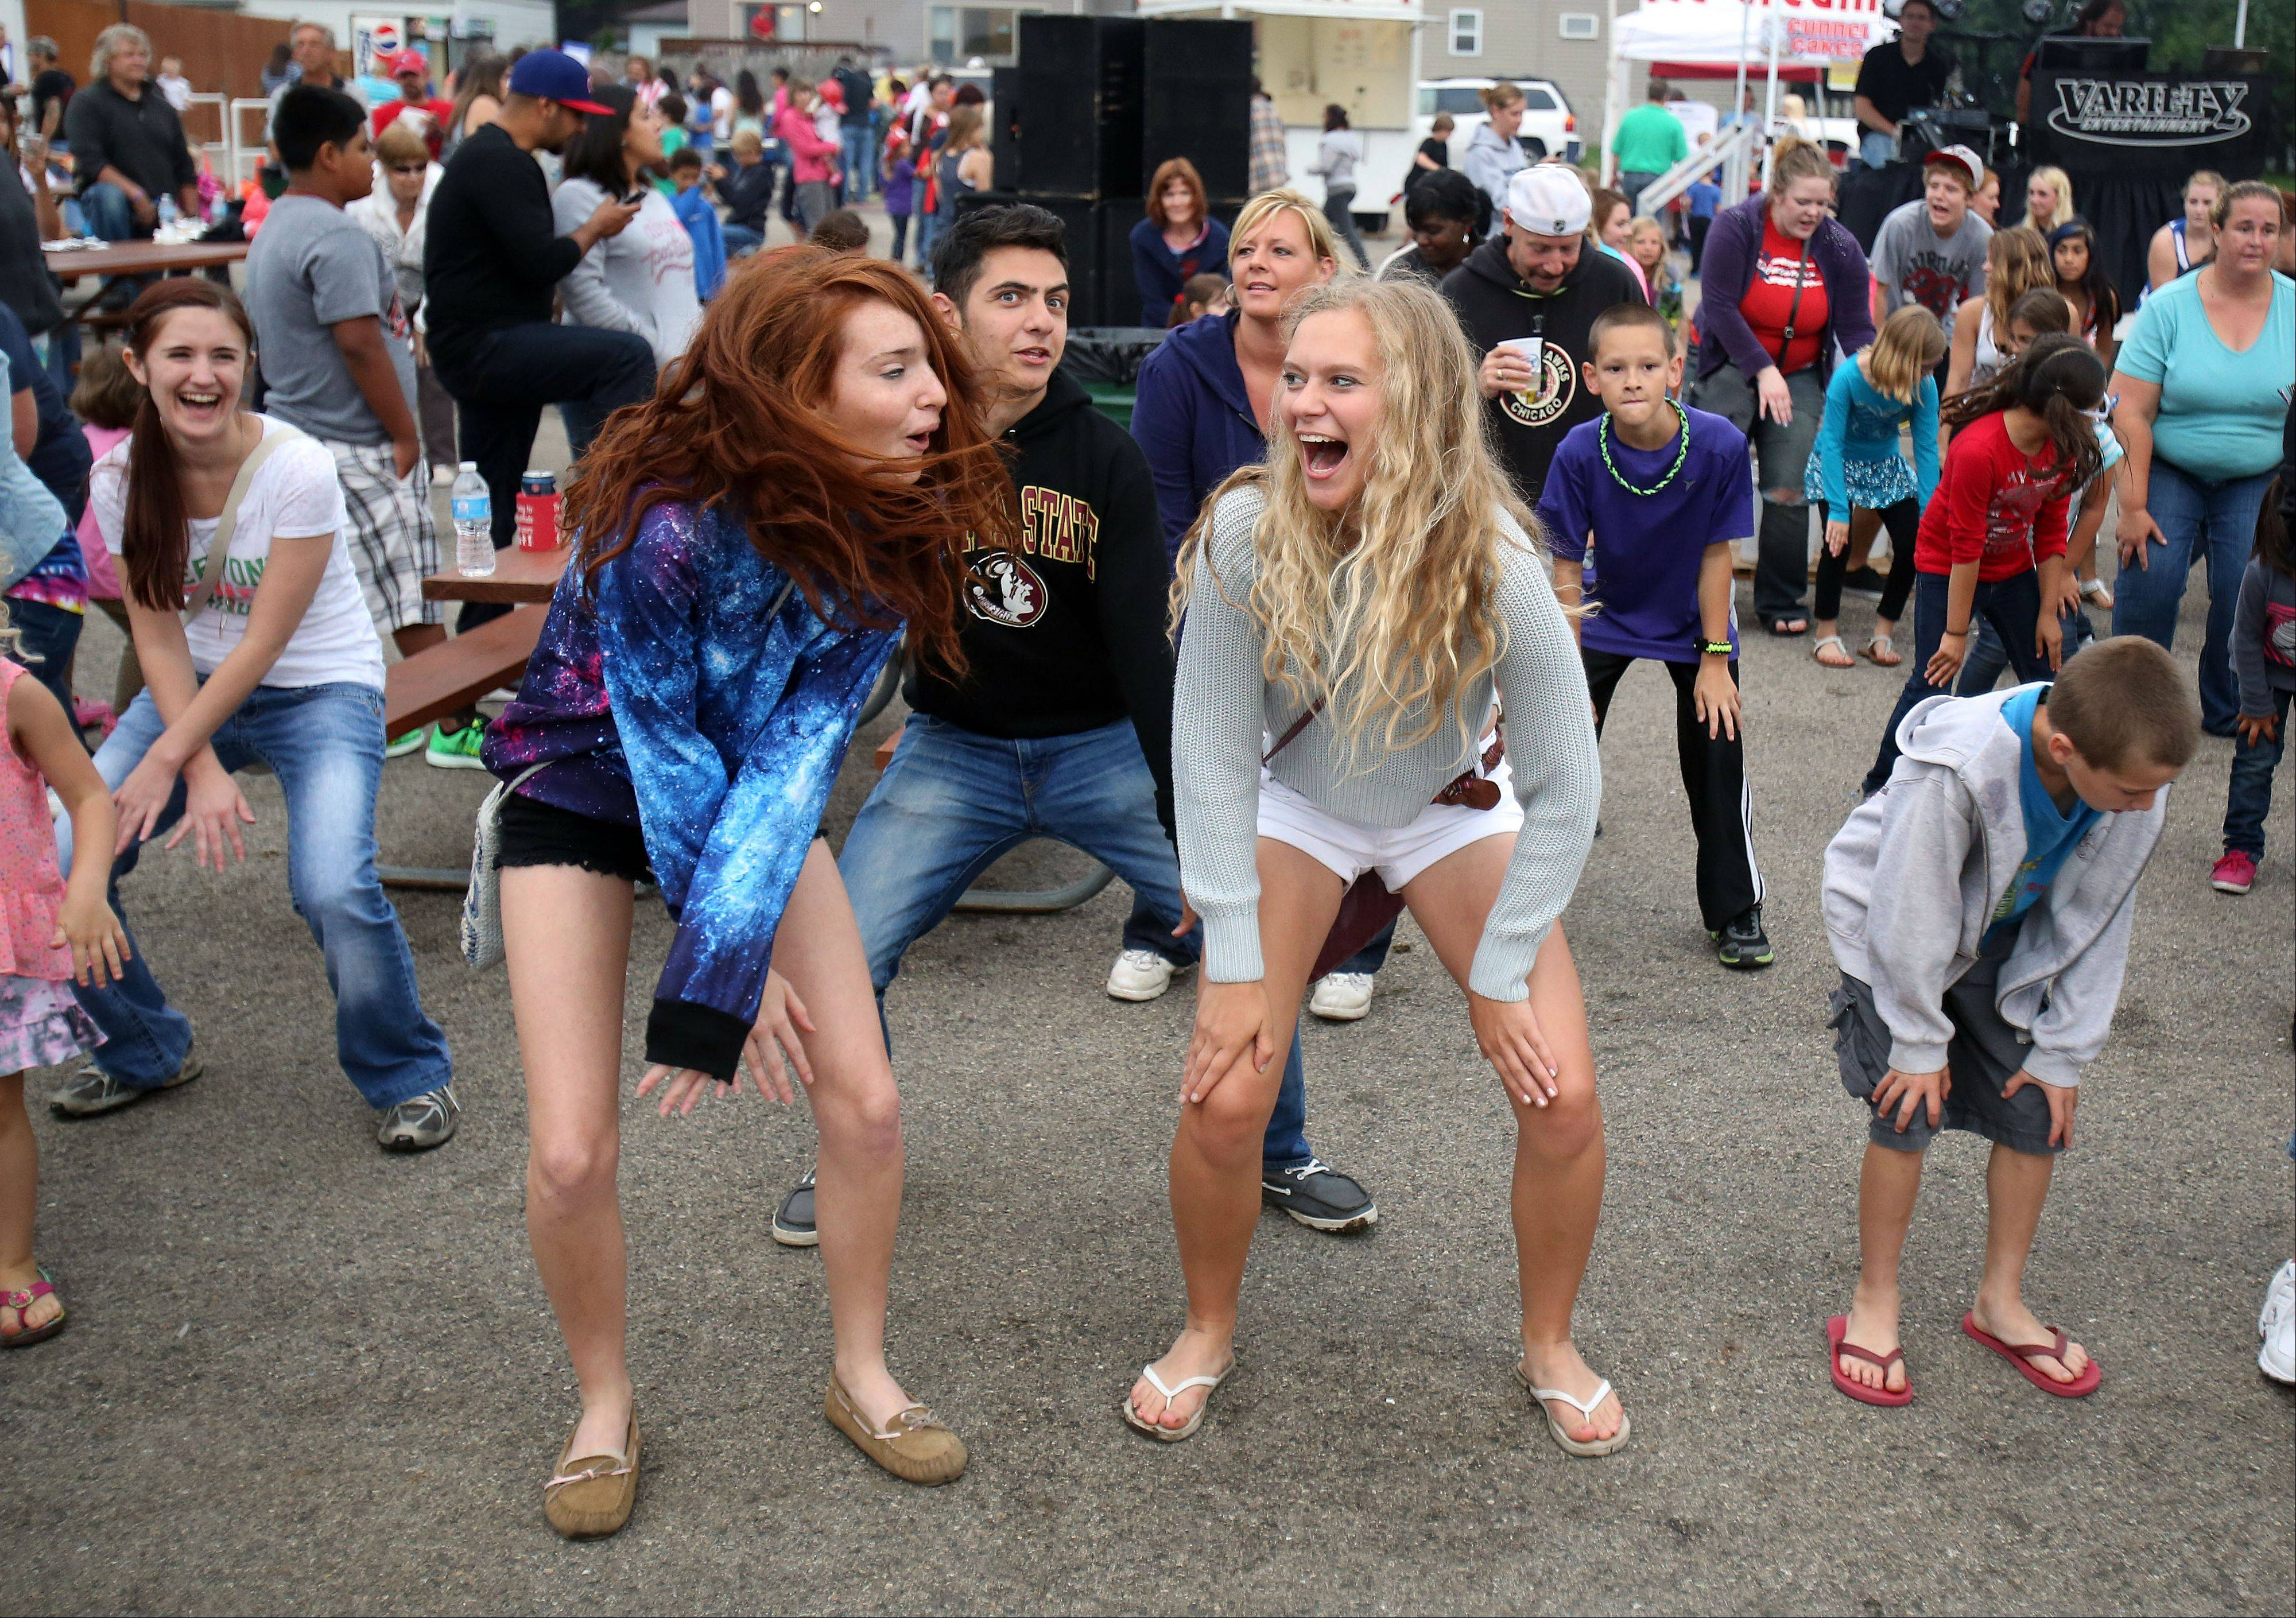 Kids do some line dancing as they wait for the fireworks to start at Cook Park in Wauconda Wednesday night.